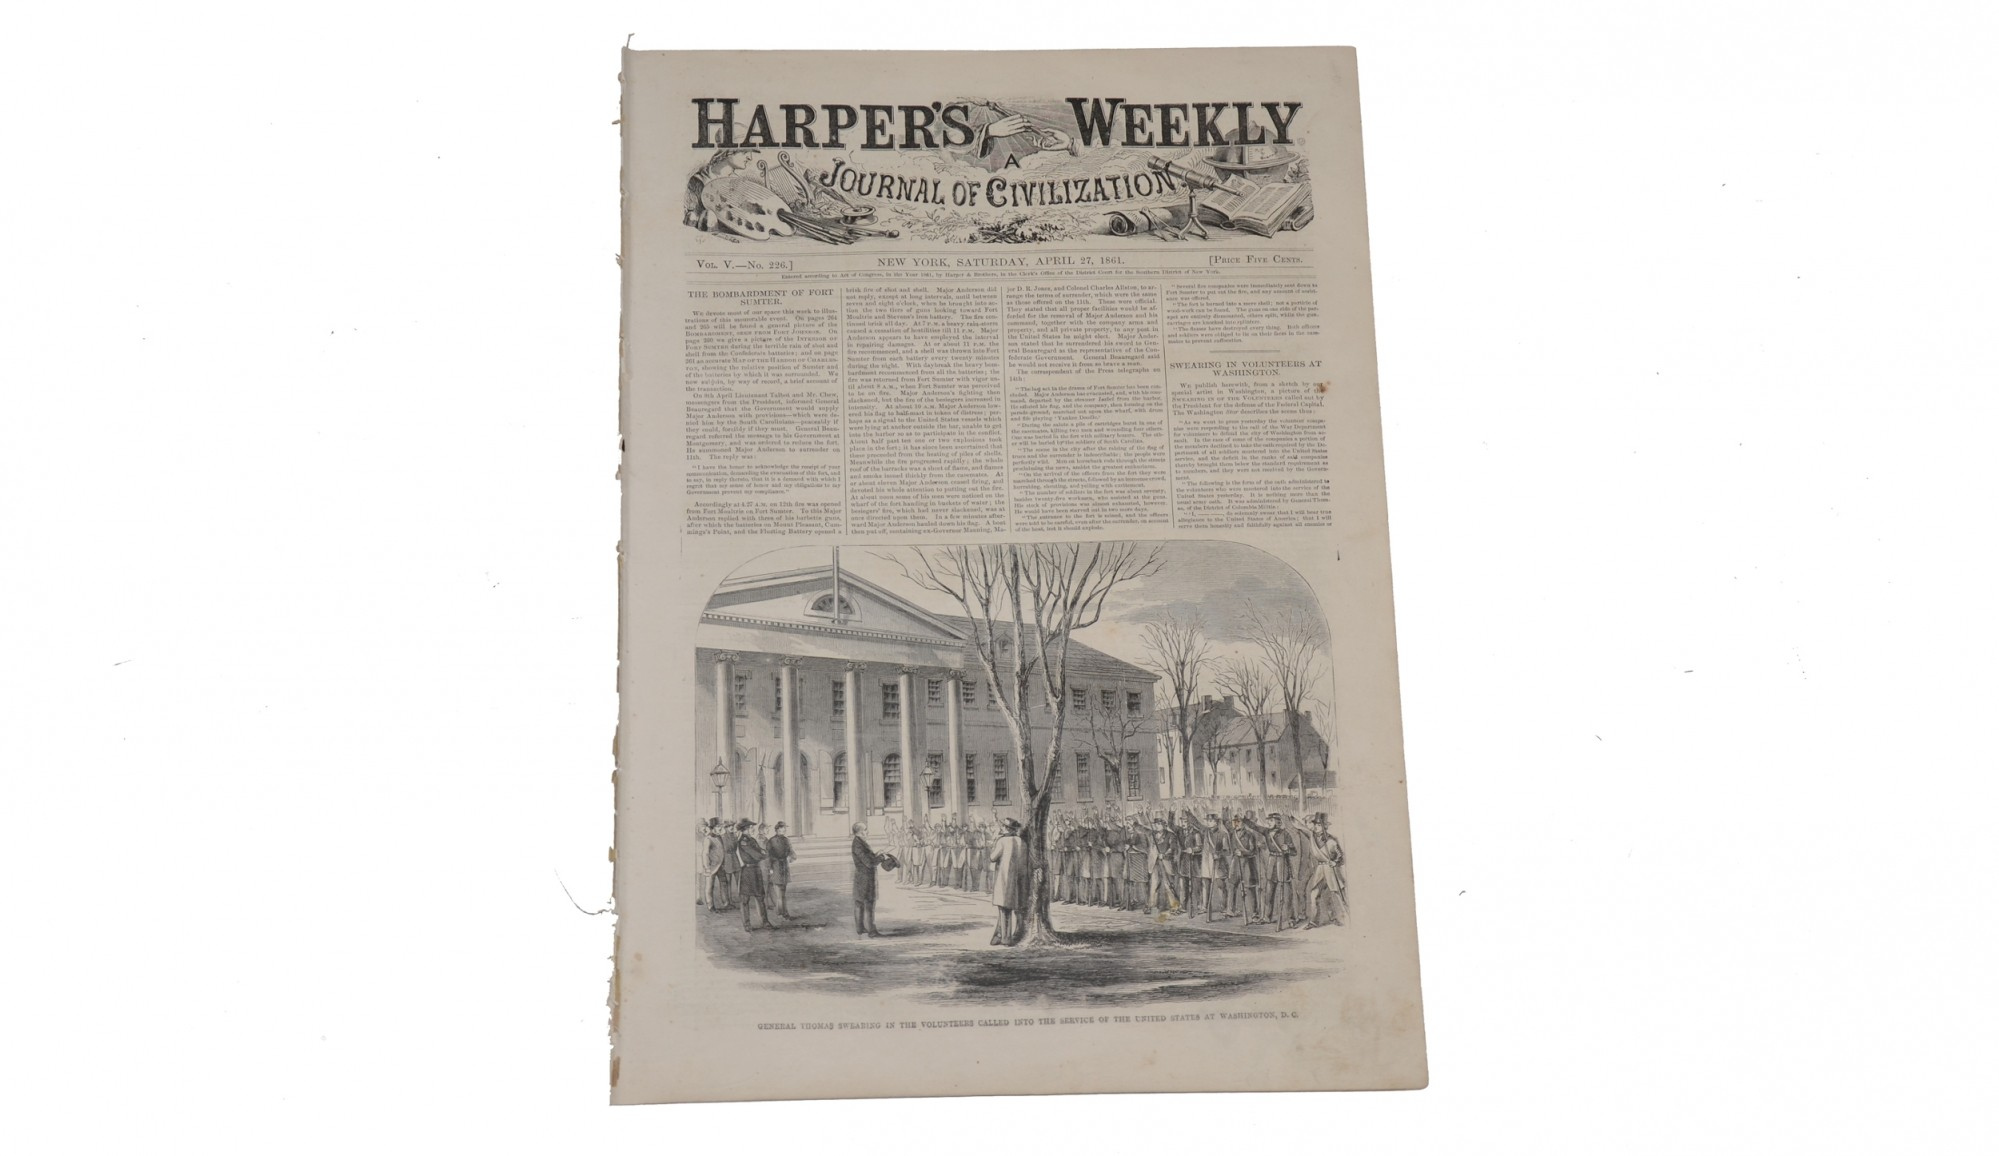 HARPER'S WEEKLY, NEW YORK, APRIL 27, 1861 – FORT SUMTER ISSUE